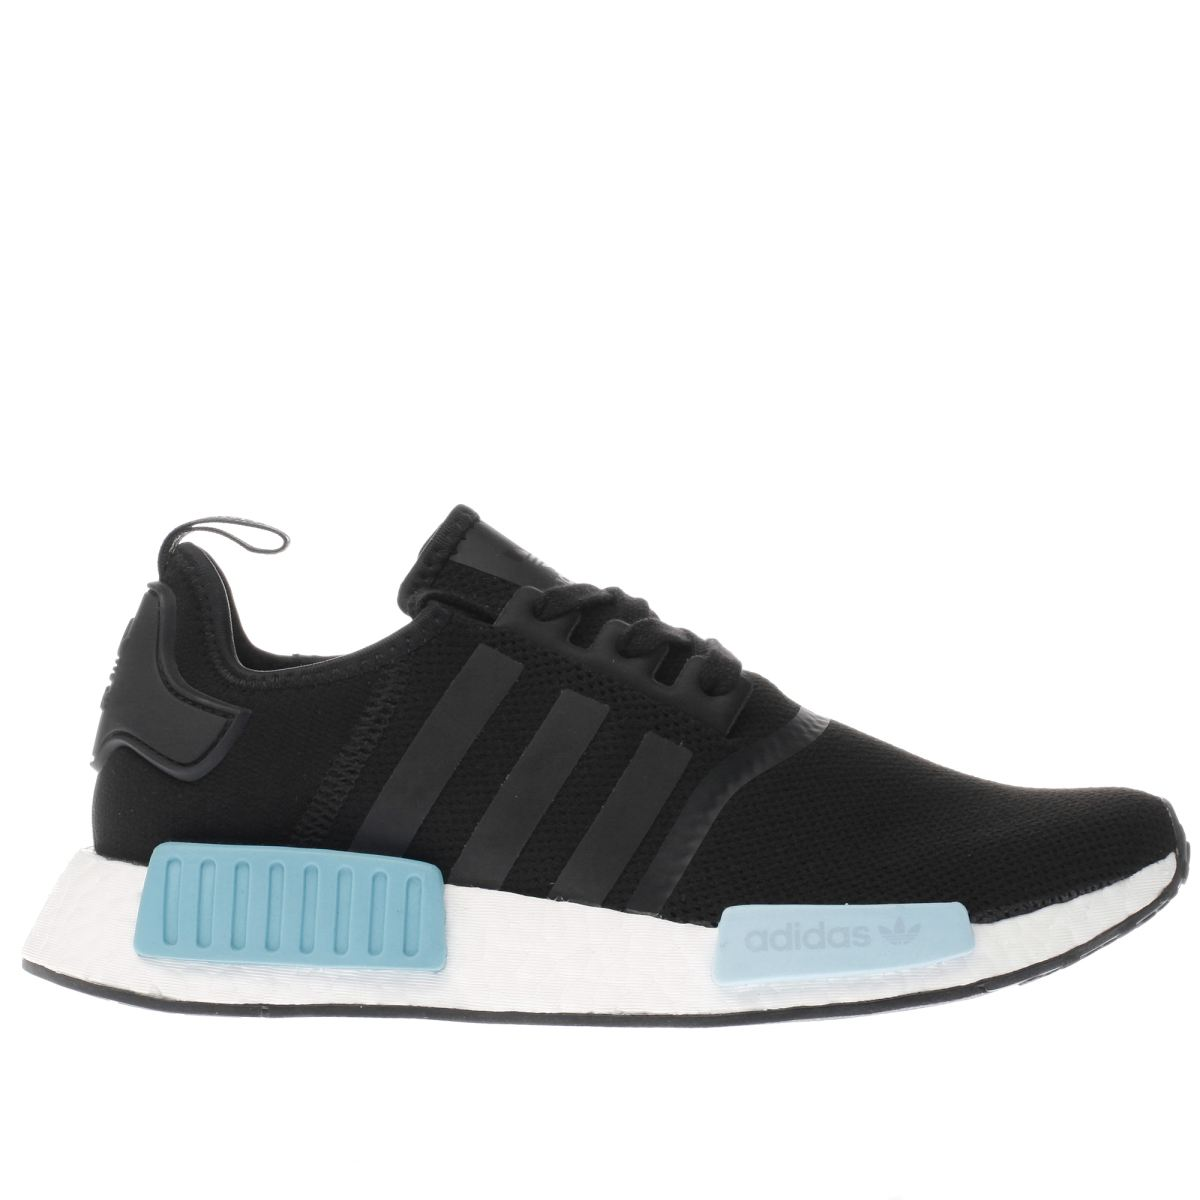 ee7f80256c1e95 Adidas Nmd Trainers kenmore-cleaning.co.uk